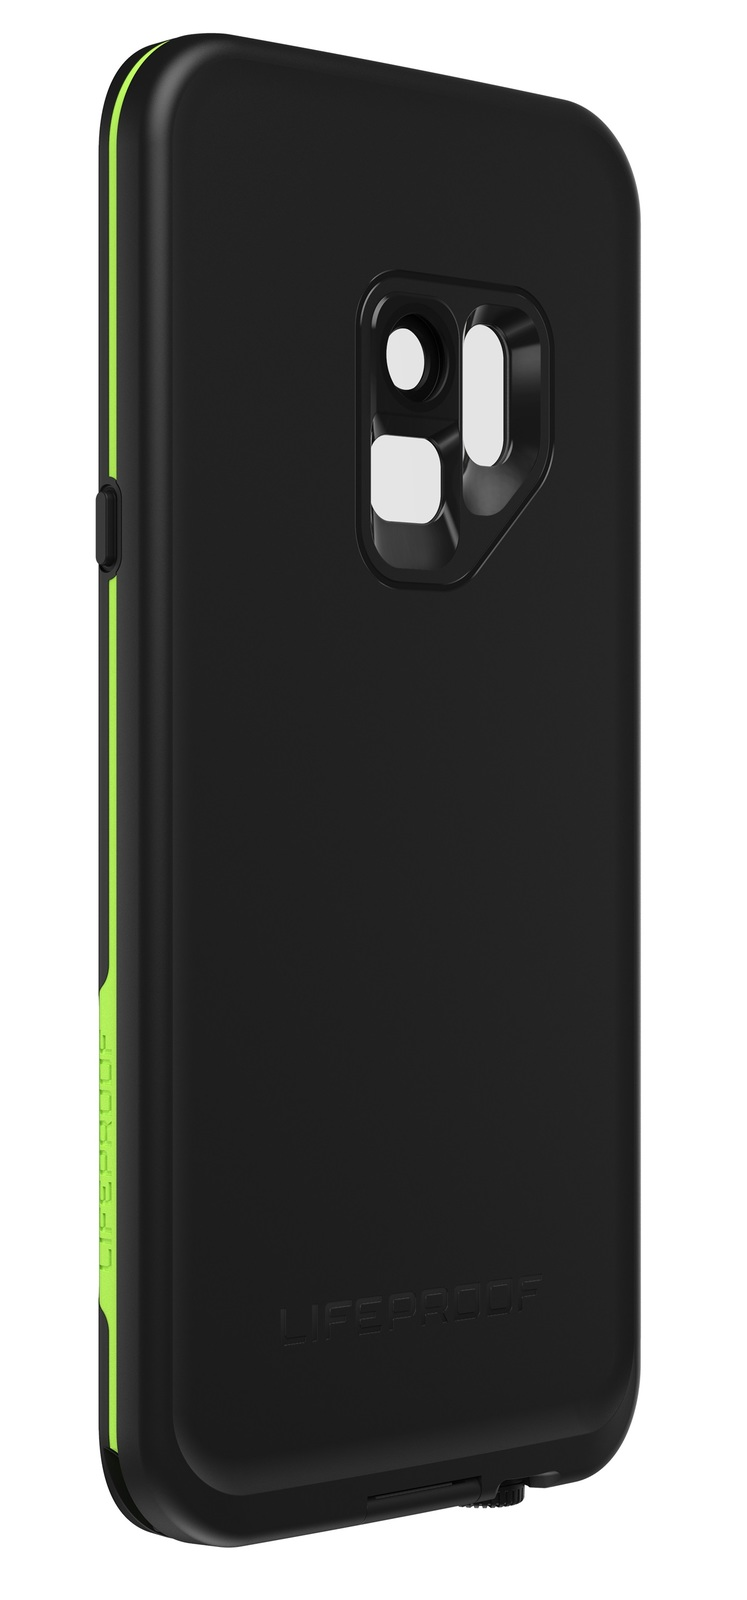 LifeProof: Fre Case for Samsung GS9 - Black Lime image